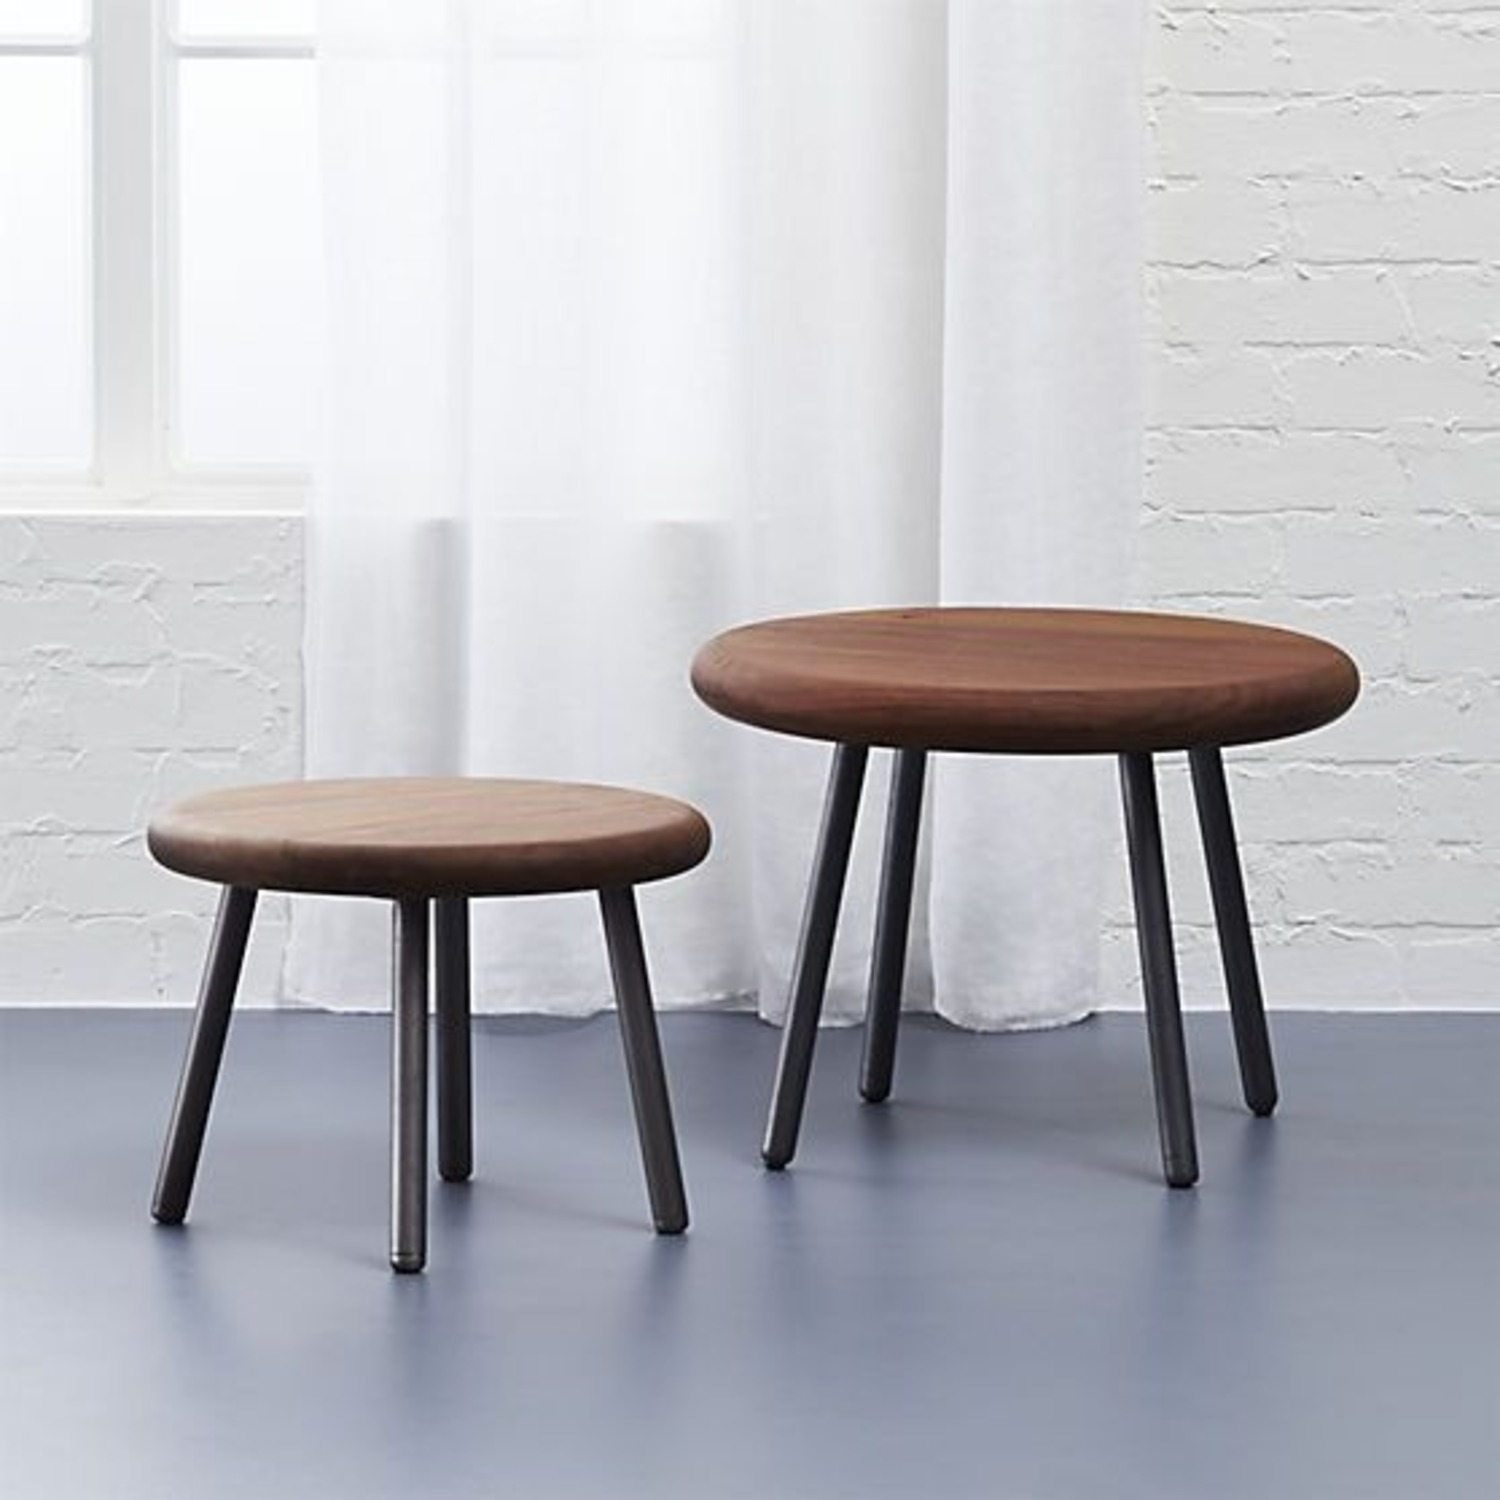 CB2 Wafer 2 Piece Nesting Table Set - image-1